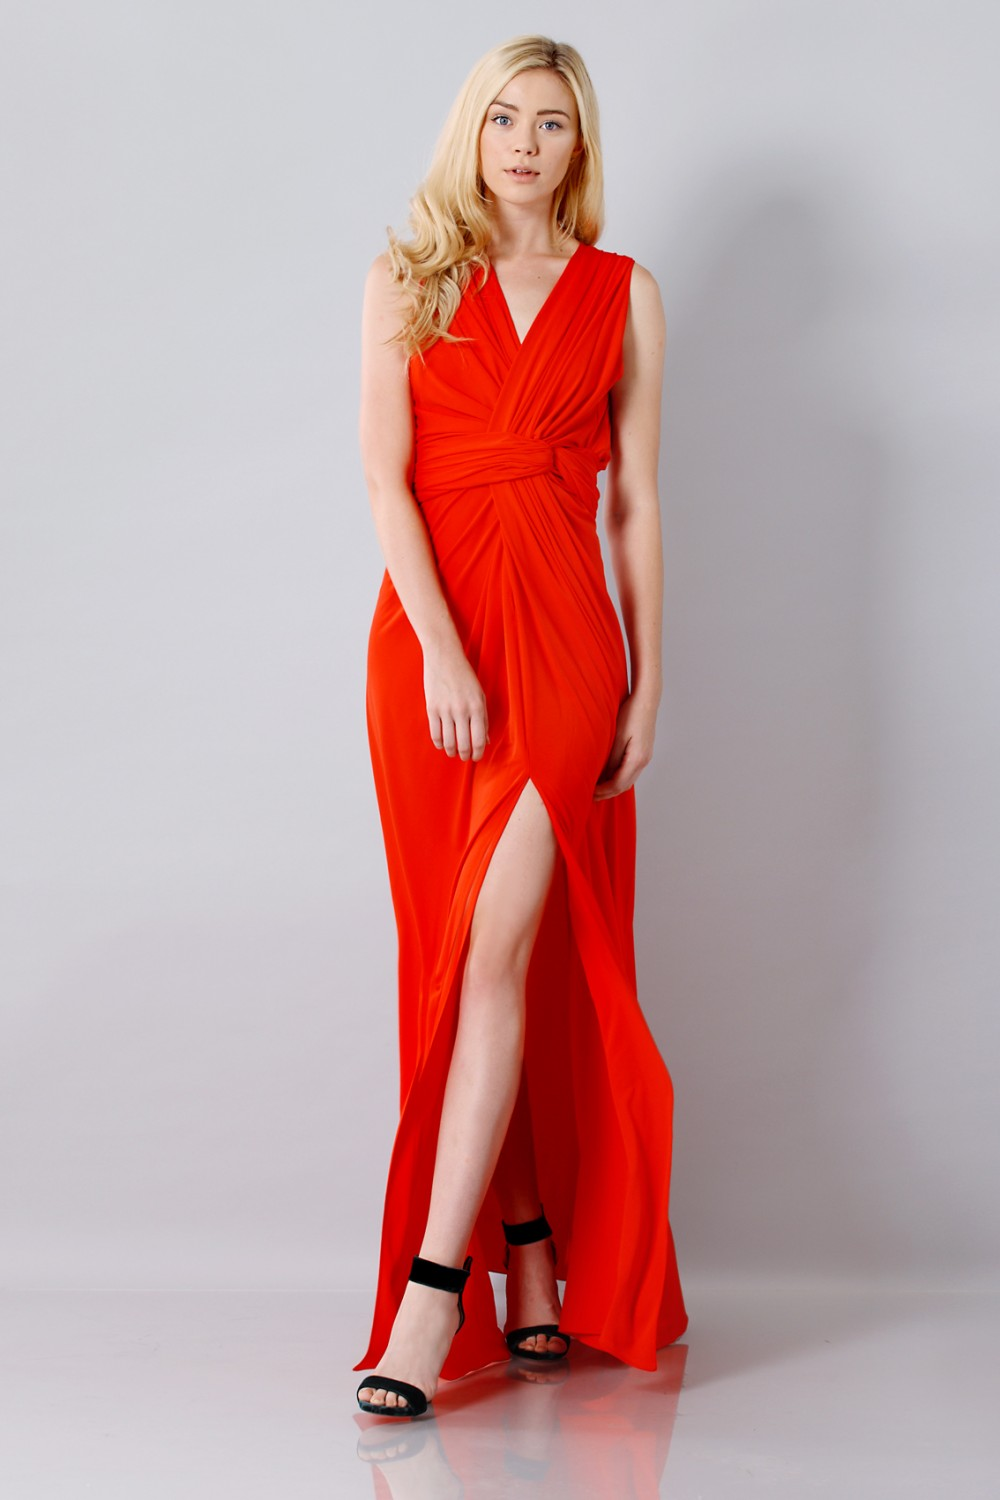 Silk red dress with slit